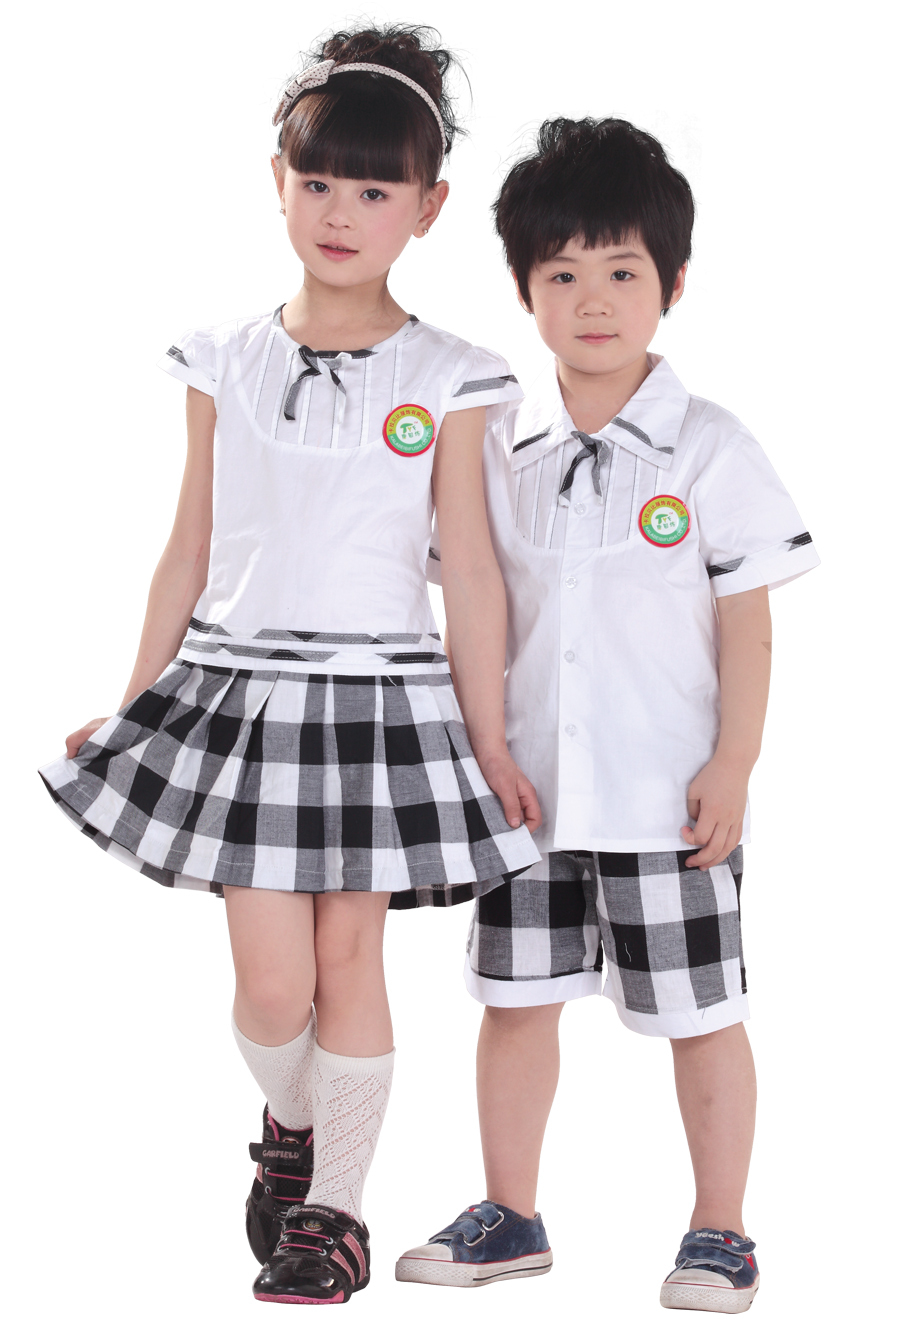 school uniform a necessity for children Dress your kids in polished girls' school uniforms from sears girls' school uniforms will help your little learner feel confident and ready to tackle anything the day has in store.